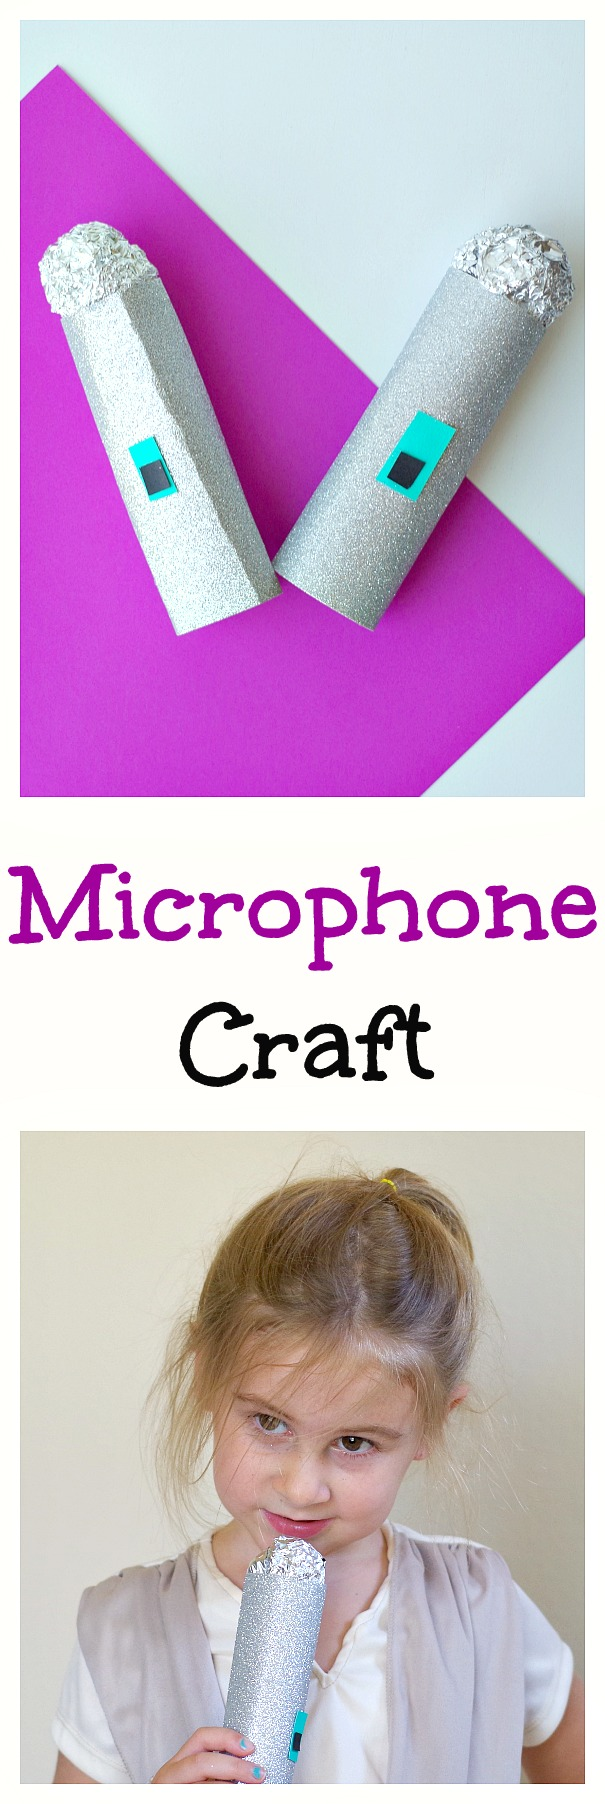 Microphone Craft! Make this easy craft with kids for fun singing performances.